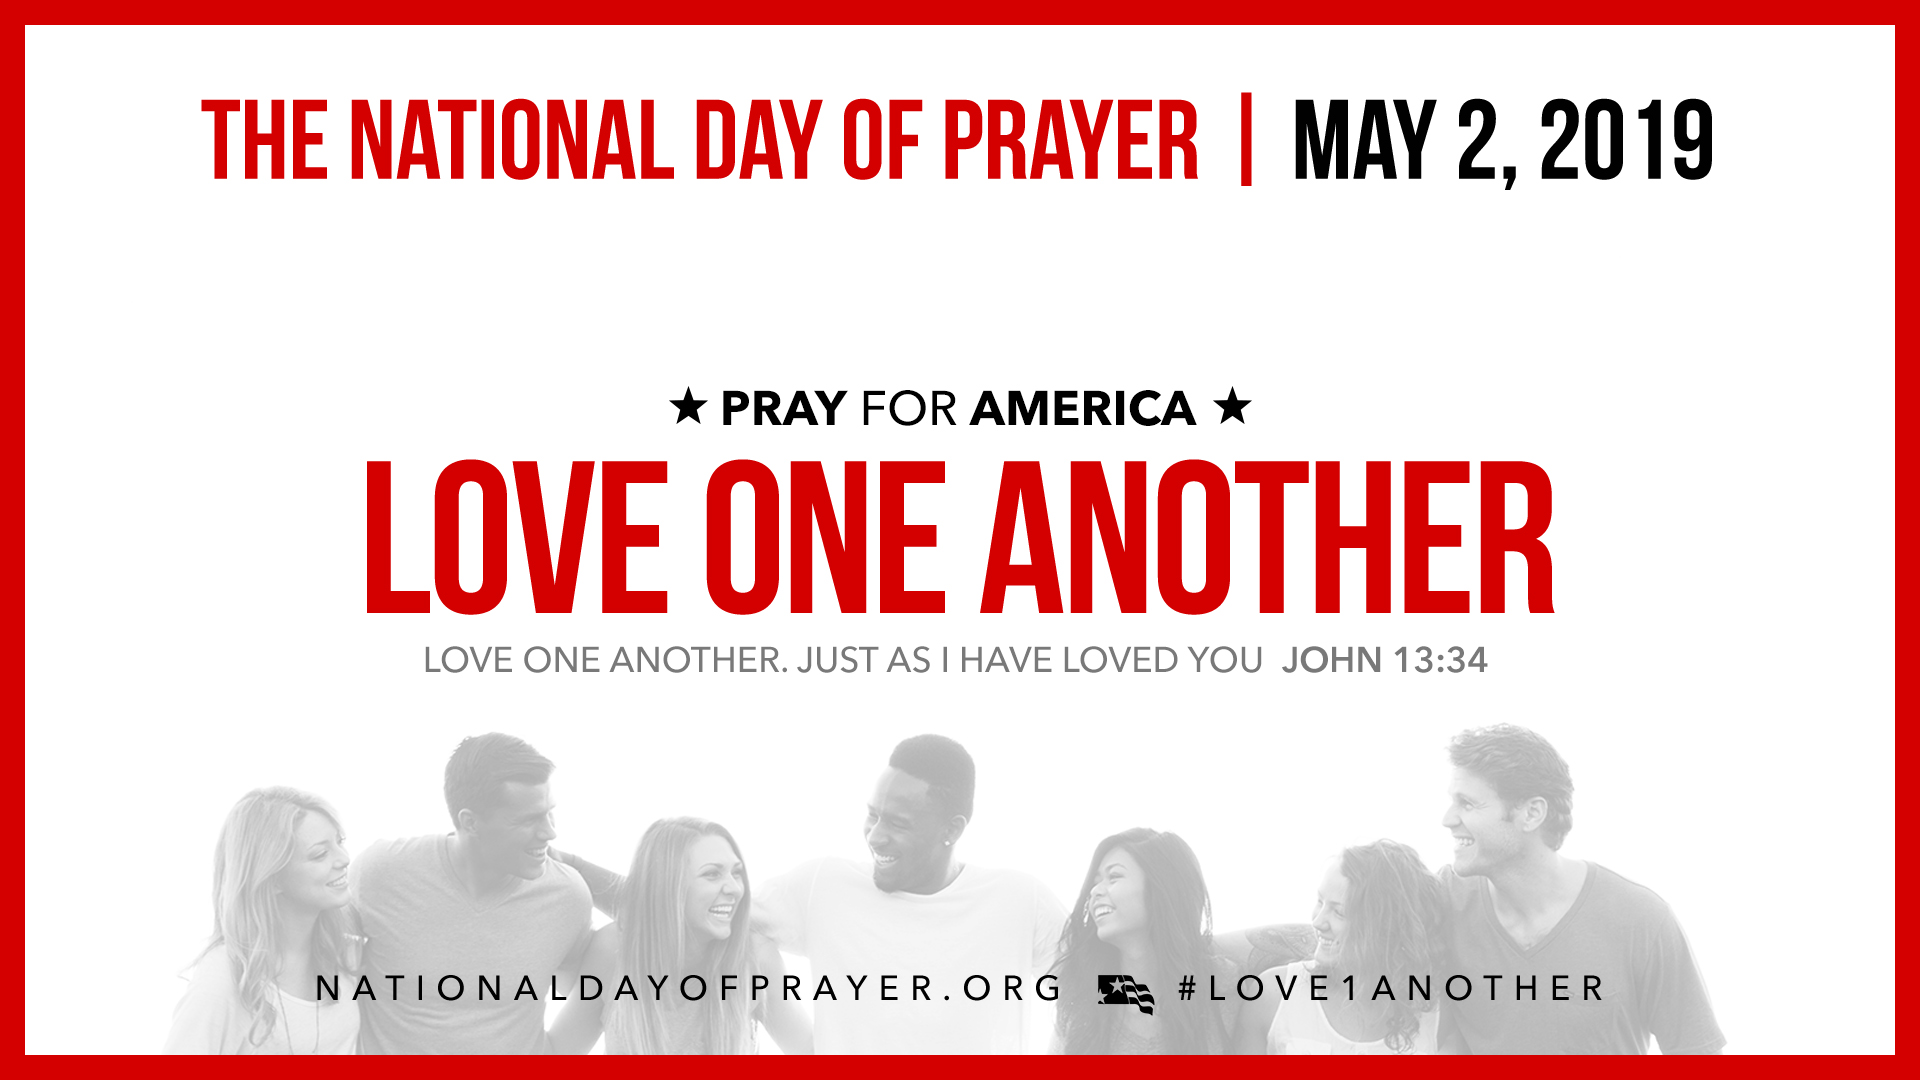 Join Us For Prayer - Covington County Courthouse Lawn12:00 Noon, Thursday, May 2, 2019